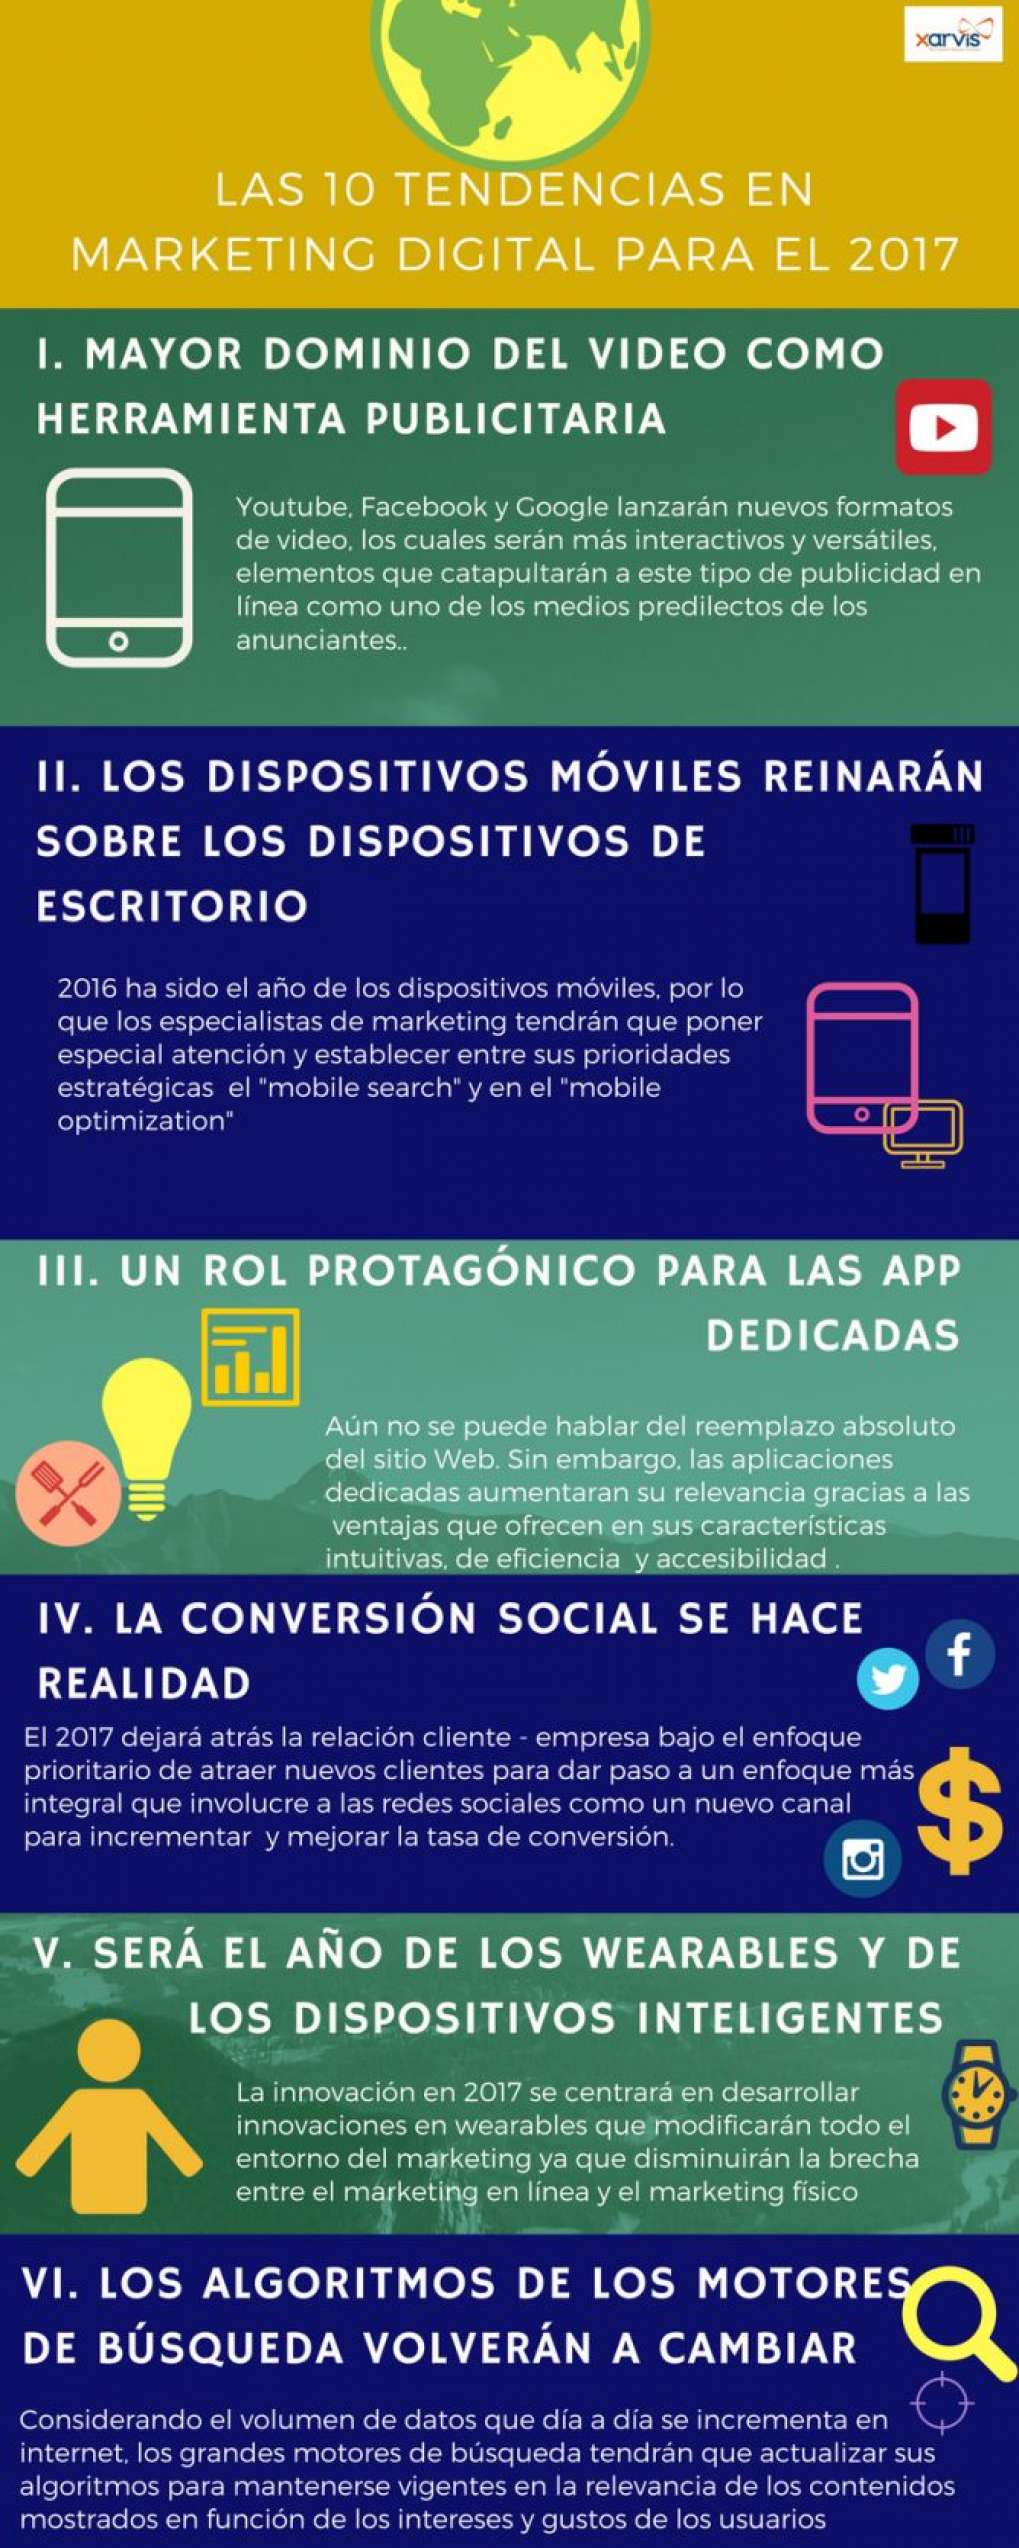 Las 10 tendencias en Marketing Digital que dominarán el 2017